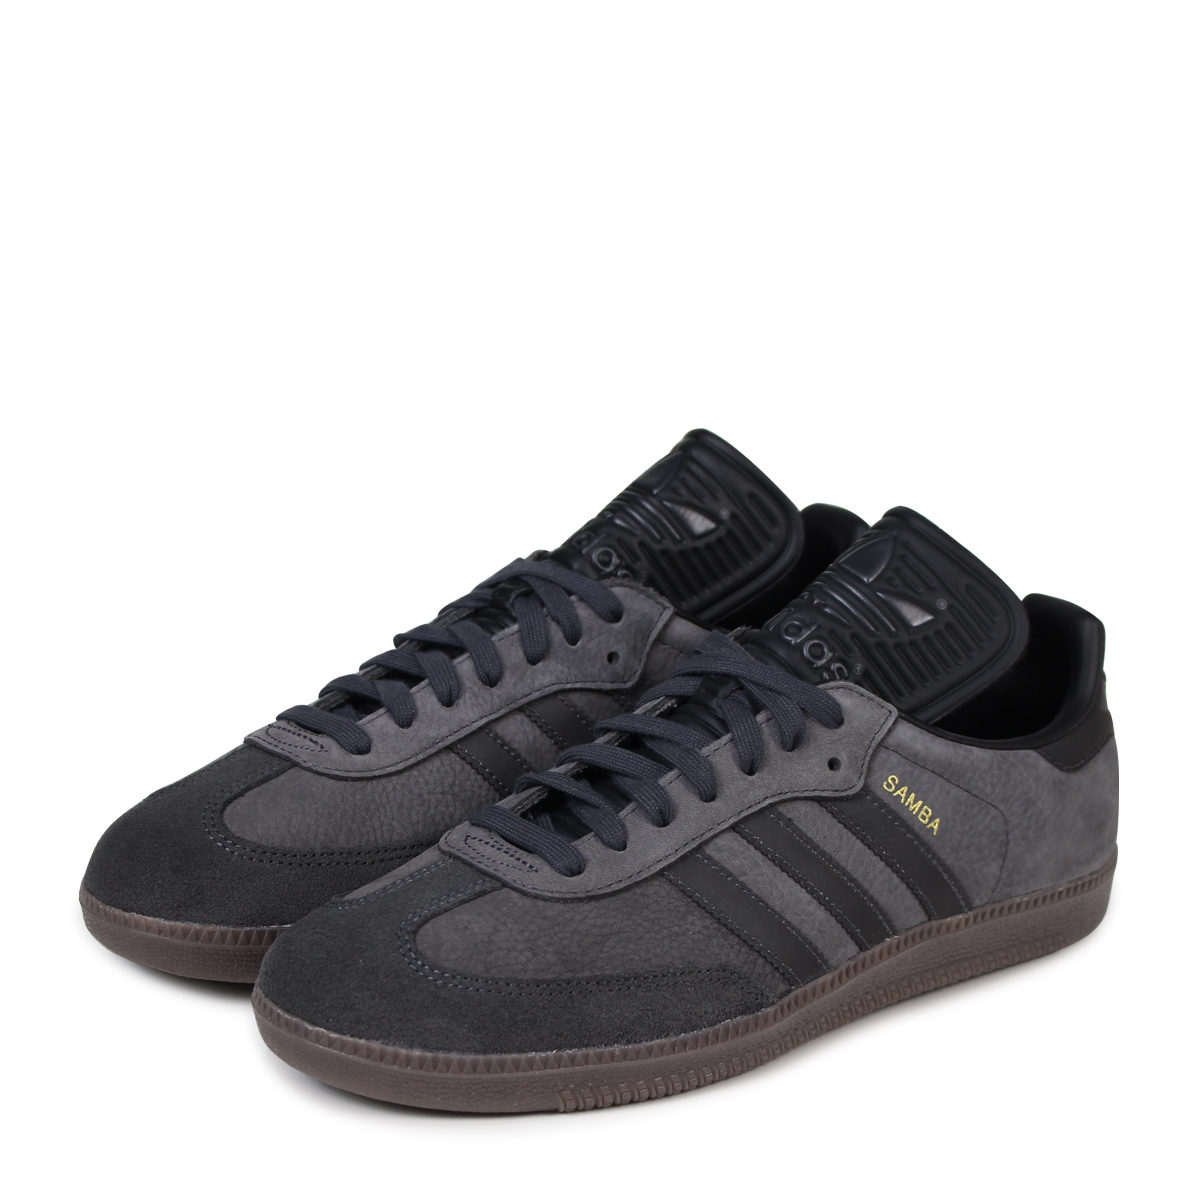 adidas Originals SAMBA CLASSIC OG Adidas samba sneakers men BZ0227 black originals [load planned Shinnyu load in reservation product 320 containing]